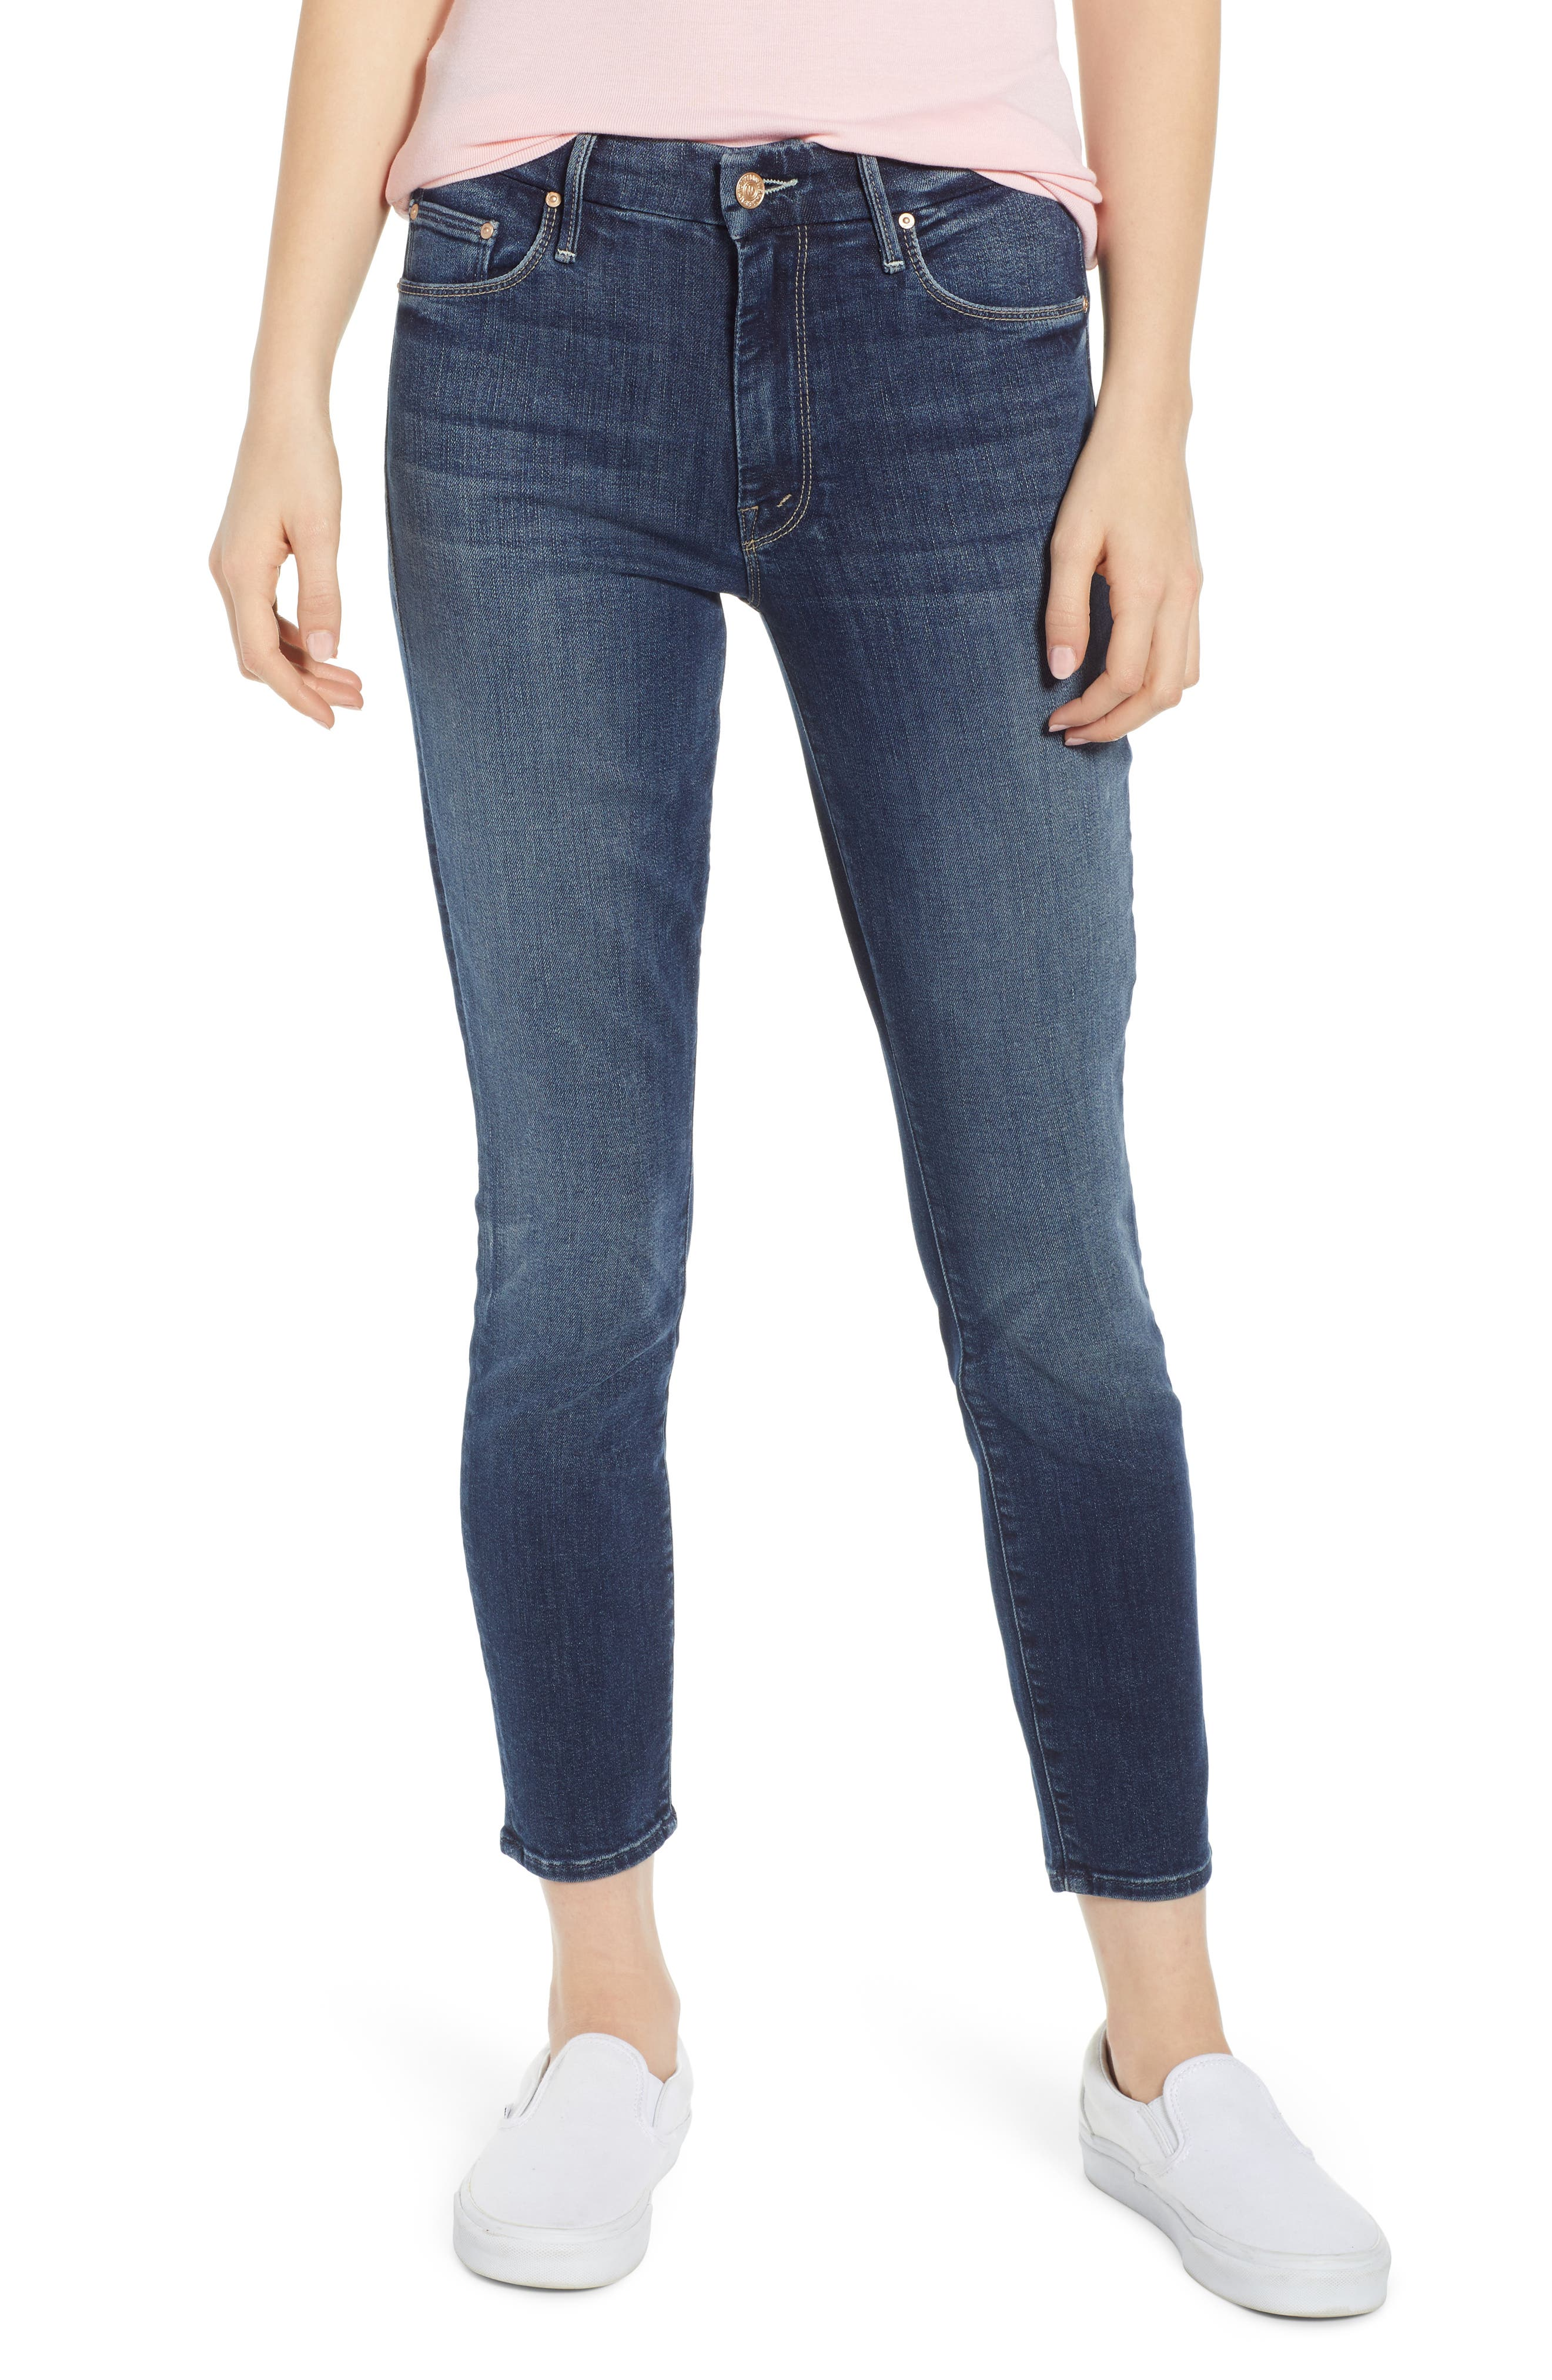 MOTHER, 'The Looker' Crop Skinny Jeans, Main thumbnail 1, color, ON THE EDGE